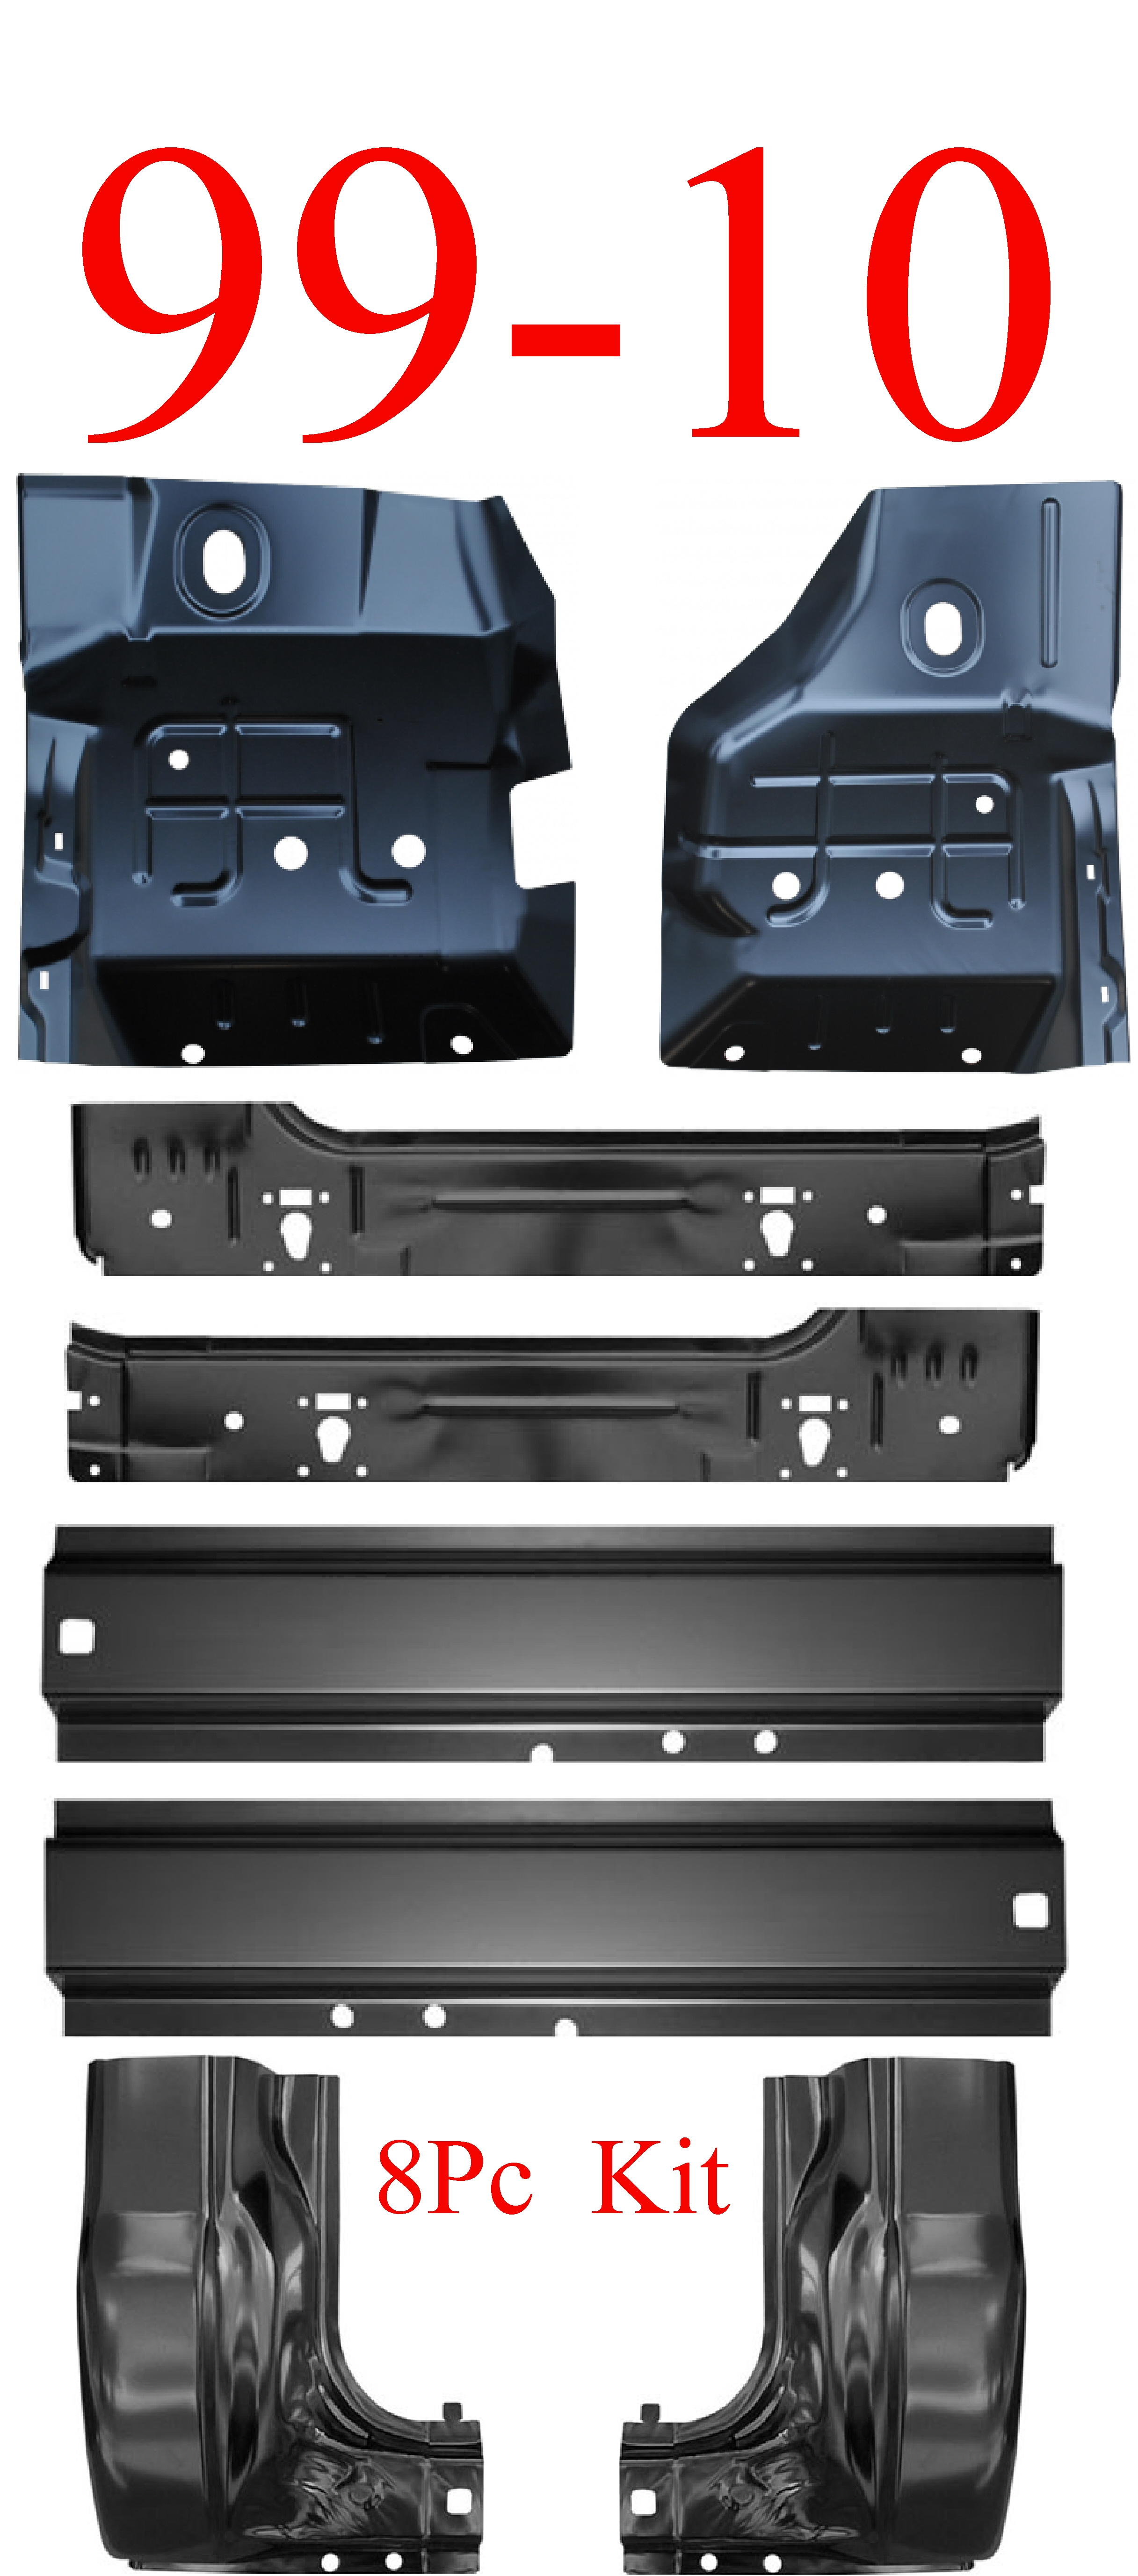 99-10 8Pc Super Duty Rocker Panel, Inner, Floor & Cab Corner Kit